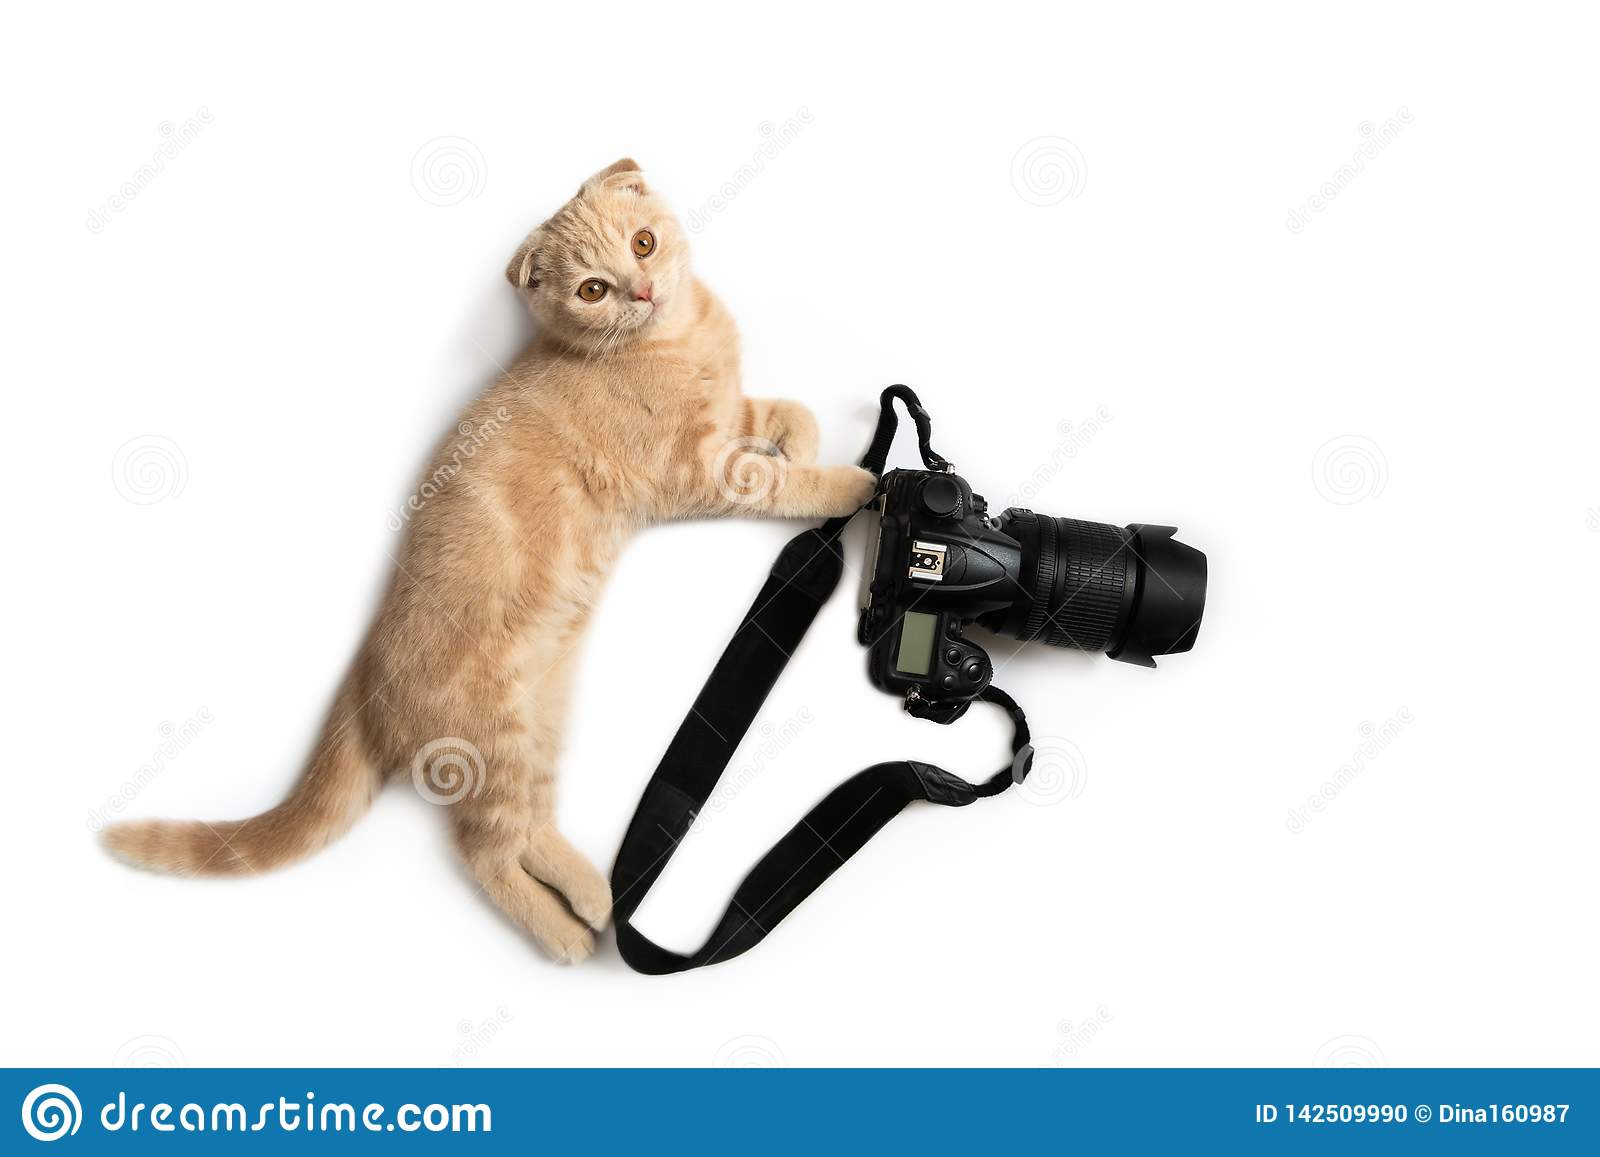 Crazy photographer. Funny cat with camera isolated on white background. Creative concept for World photography day, banner,